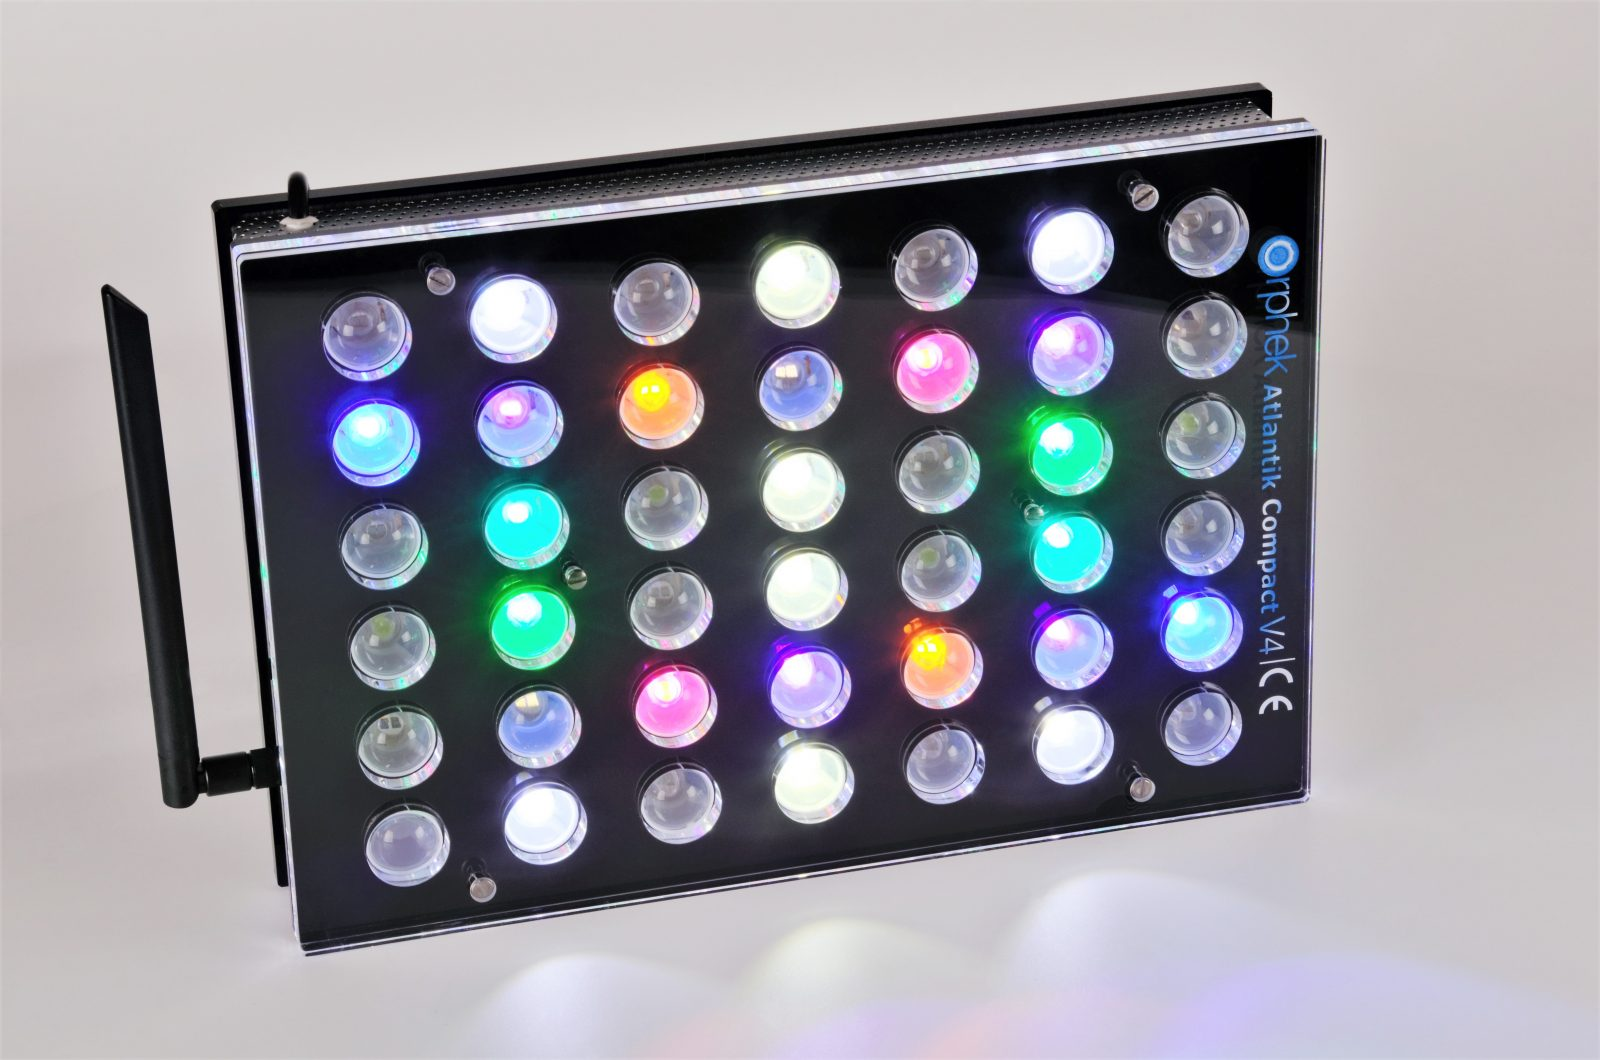 Orphek Aquarium LED Lighting Atlantik CompactV4 light on channel 1+3+4